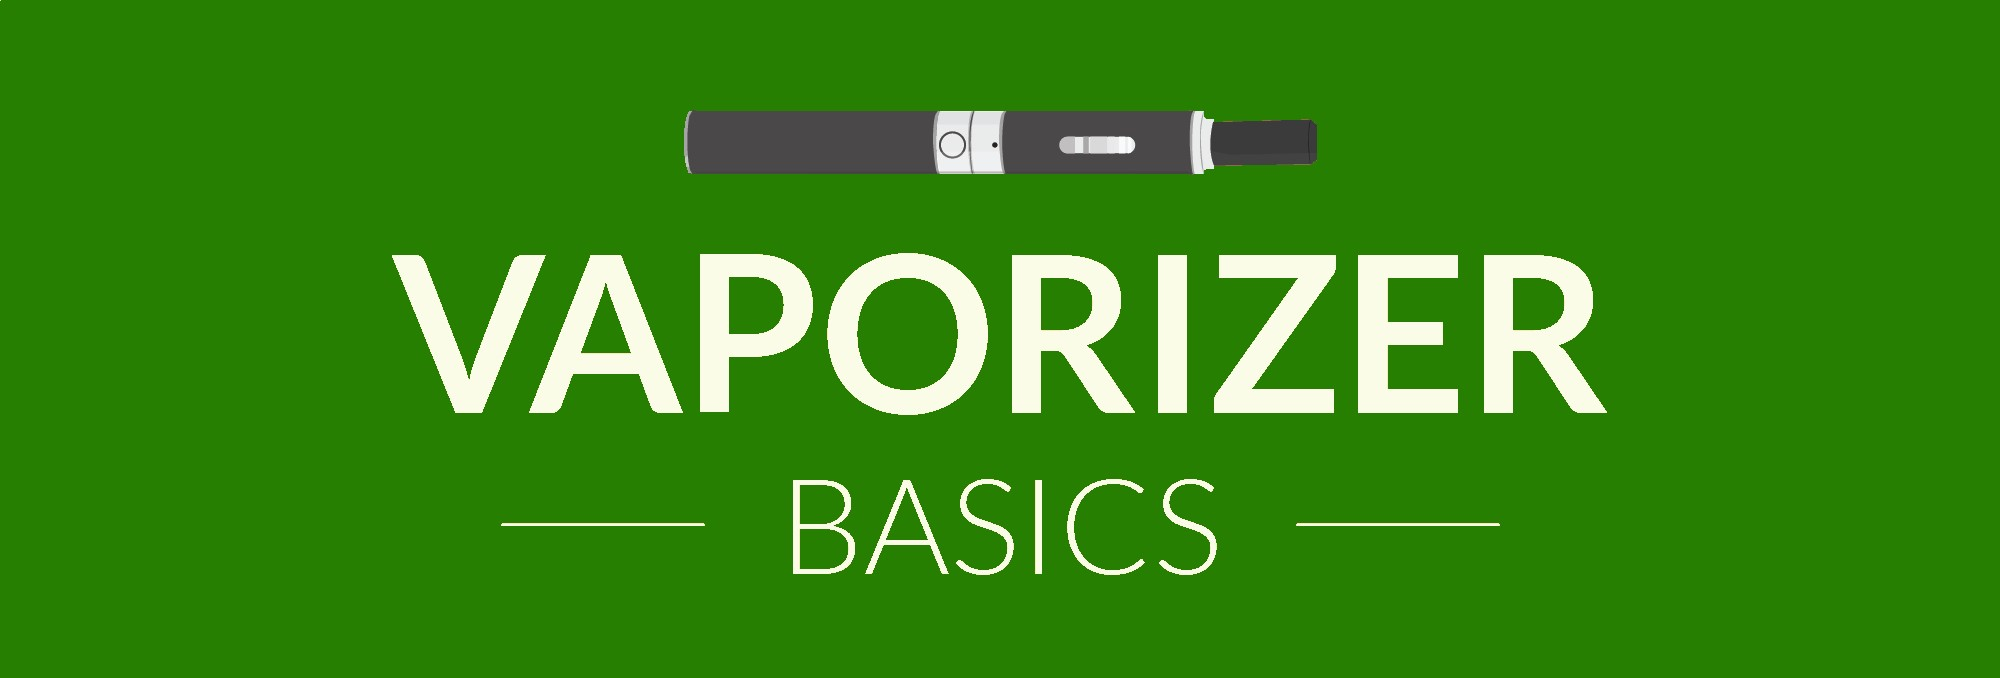 Basic Vaporizer Information